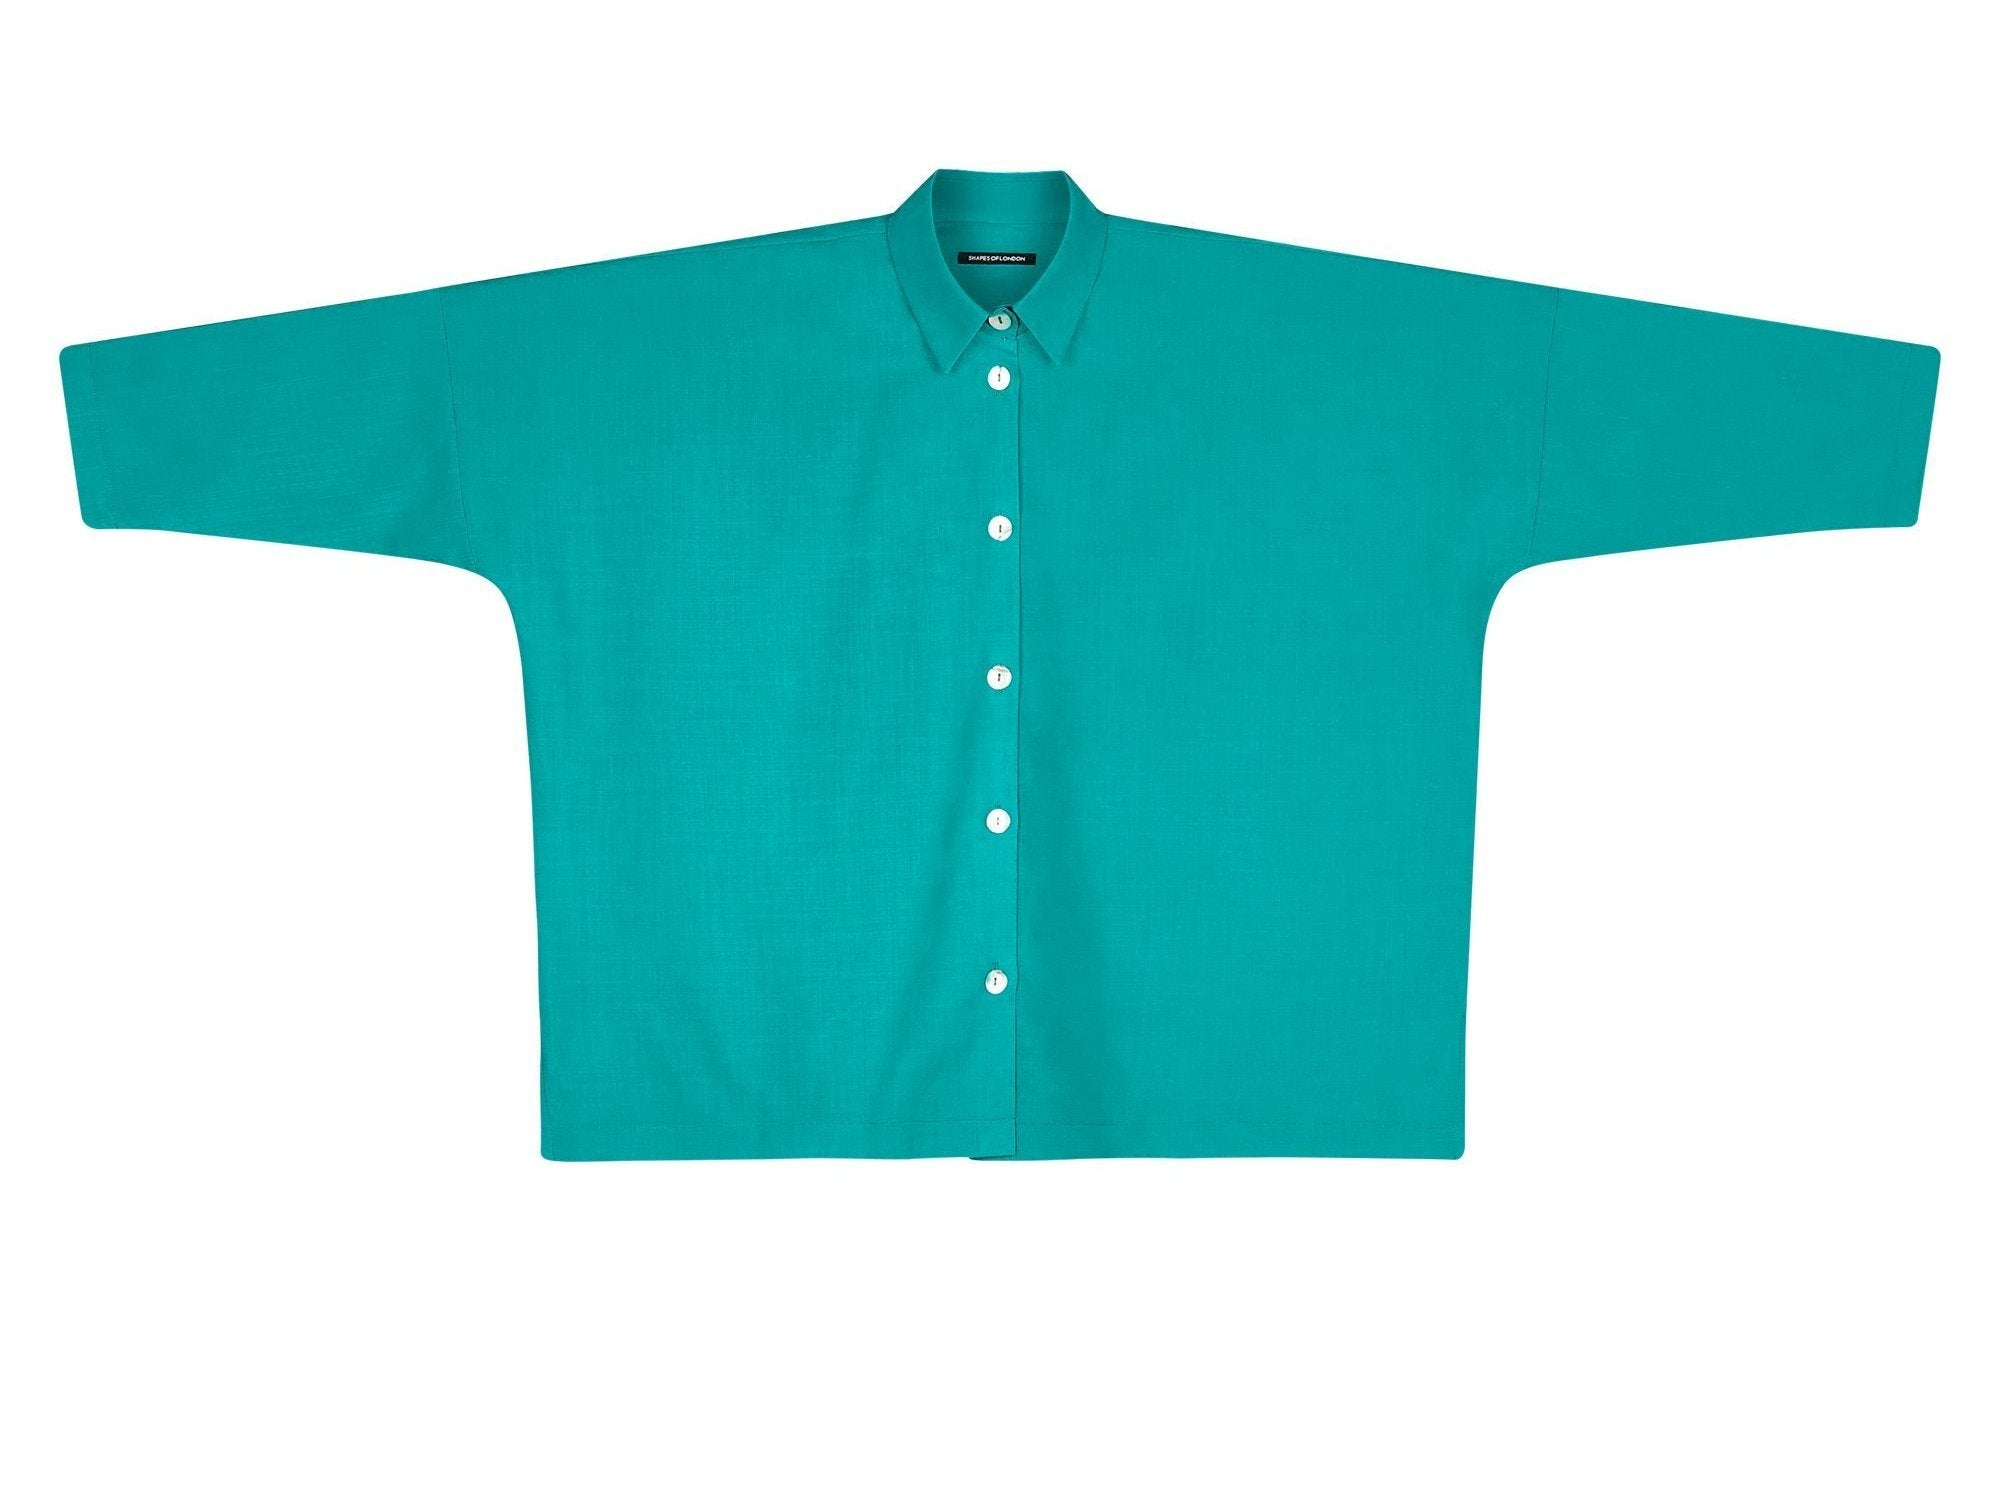 LIGHT WOOL OVERSIZED SHIRT | VIVID TURQUOISE